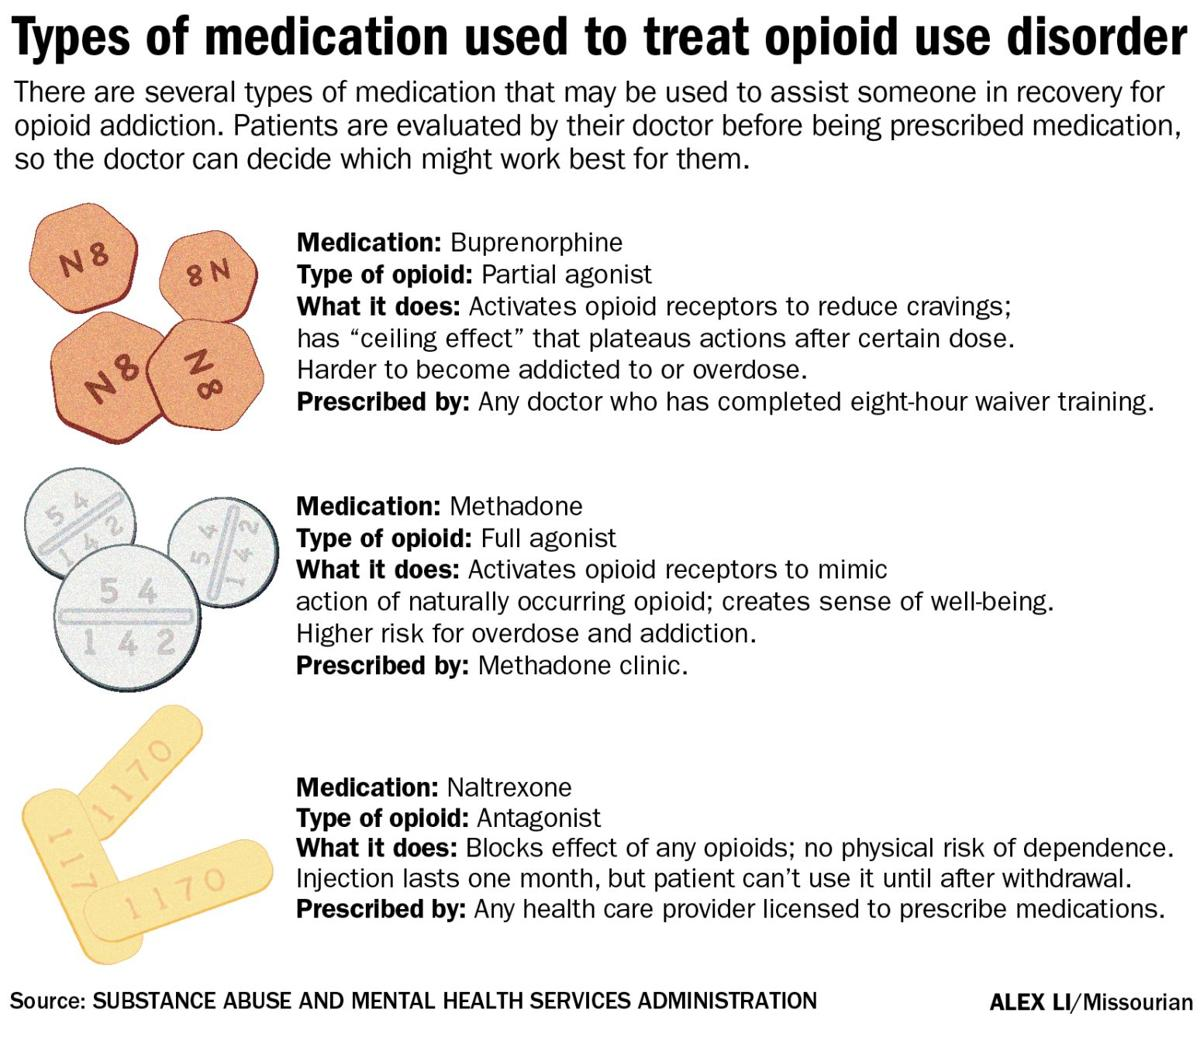 Types of medication used to treat opioid disorder